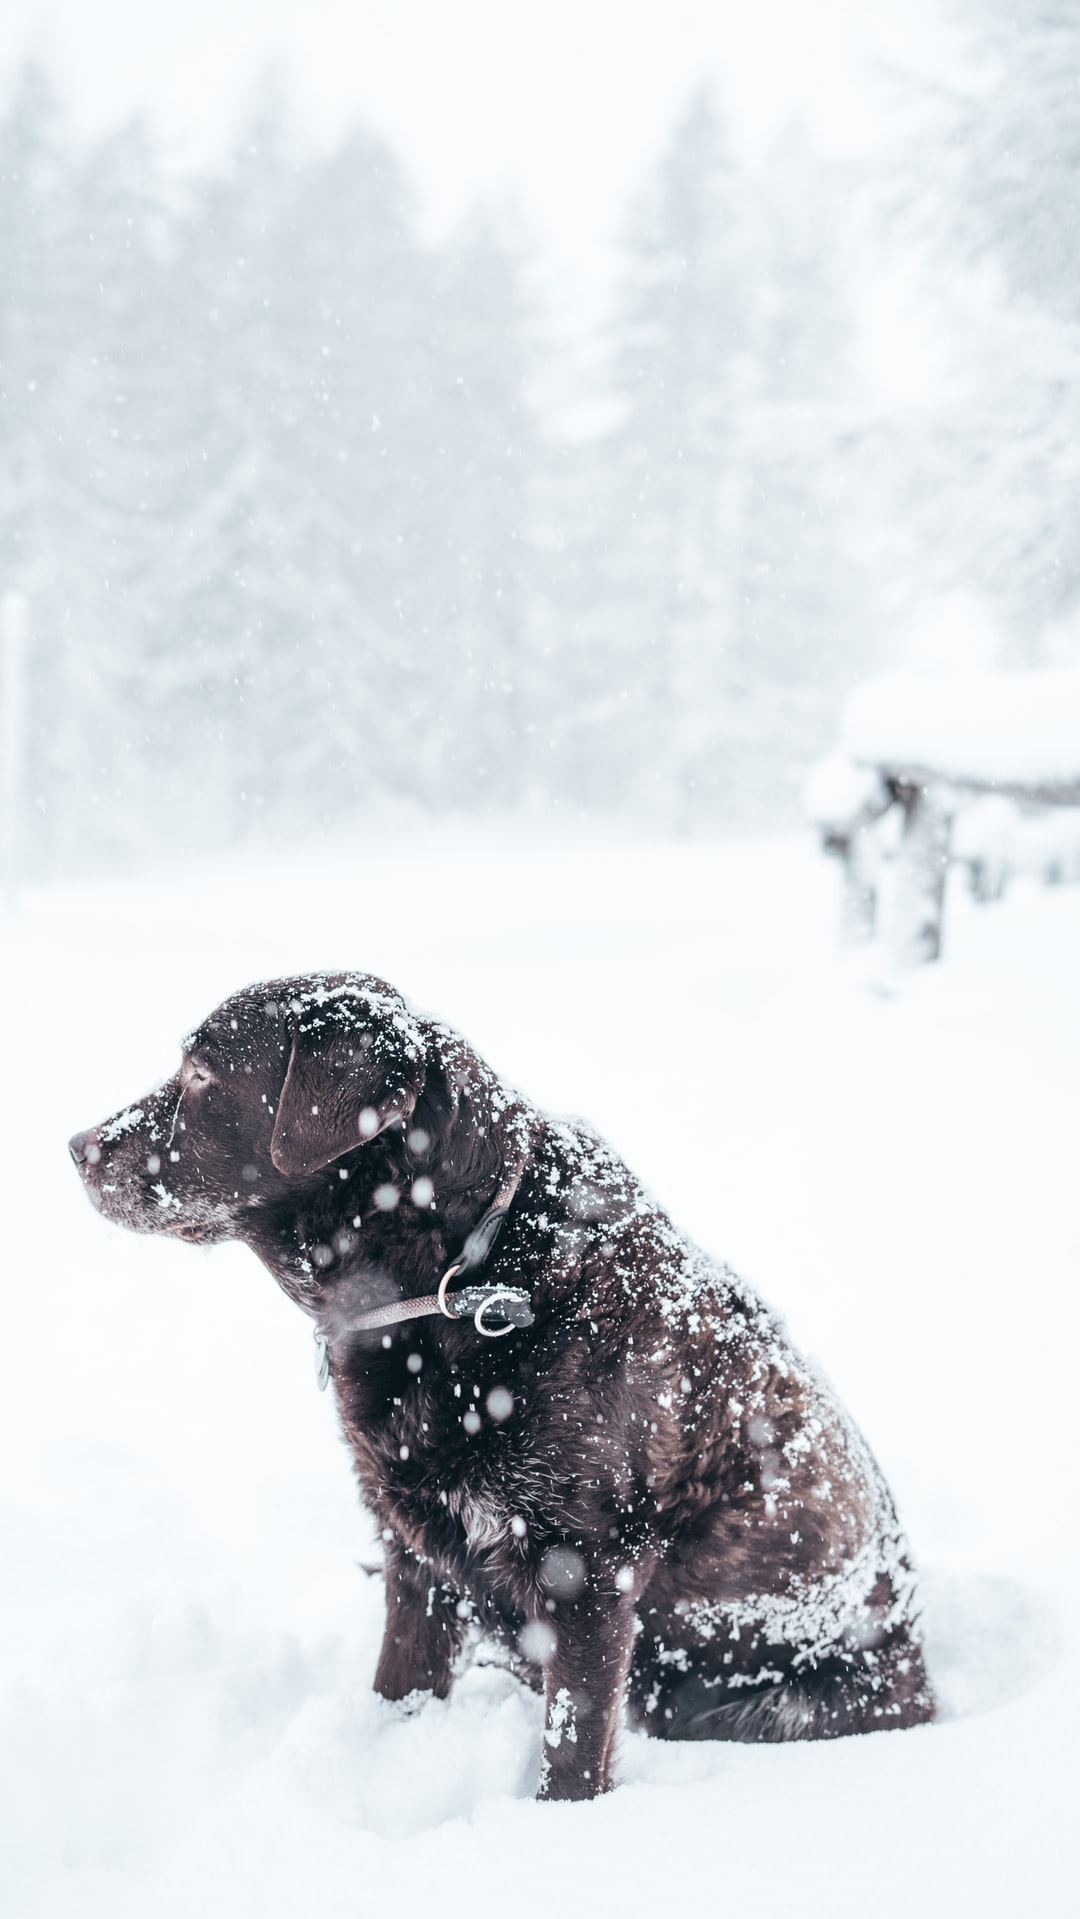 How to keep dogs warm outside: 10 Tips For Cold Weather